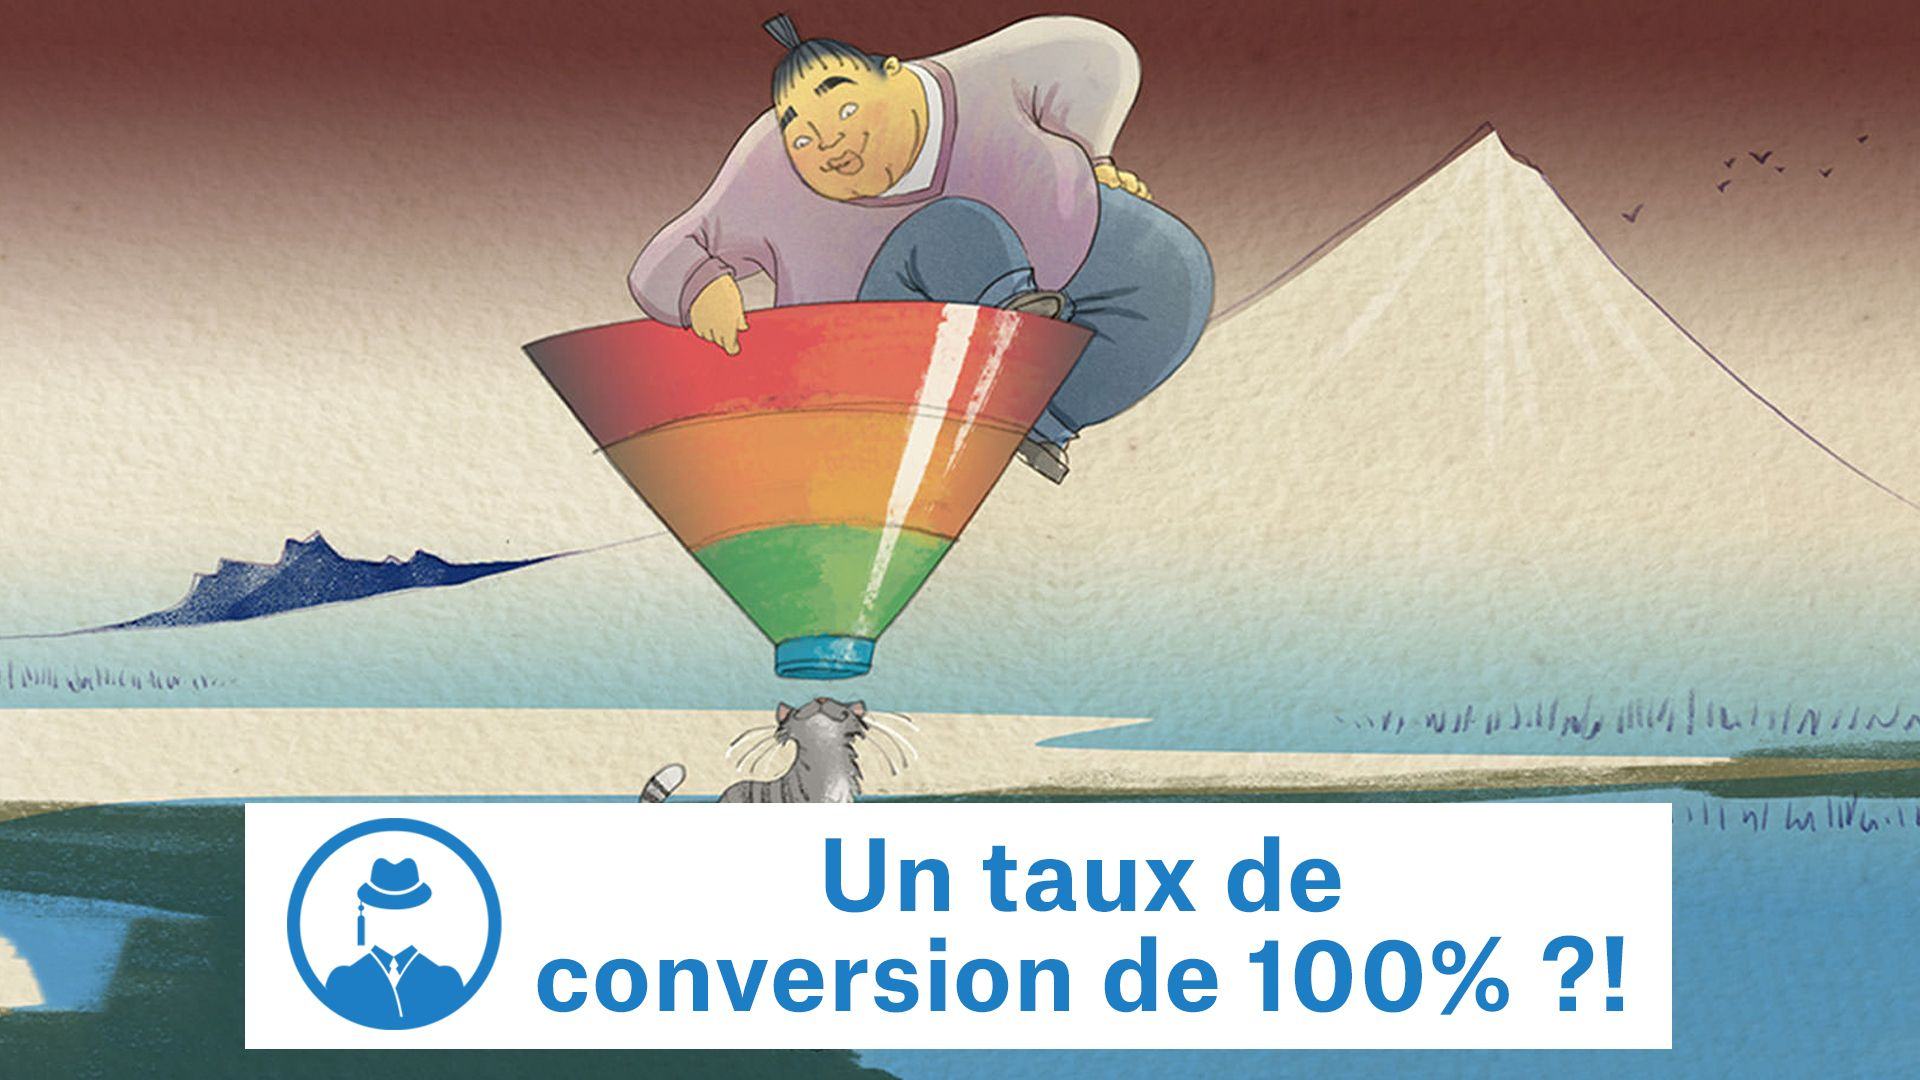 Un taux de conversion de 100% ?! #GrowthHacking #WebMarketing #FormationGrowthHacking #CentreDeFormationFrance #TunnelAARRR #AARRR #SocialMedia #CommunityManagement #SEO #MarketingDigital #SiteWeb